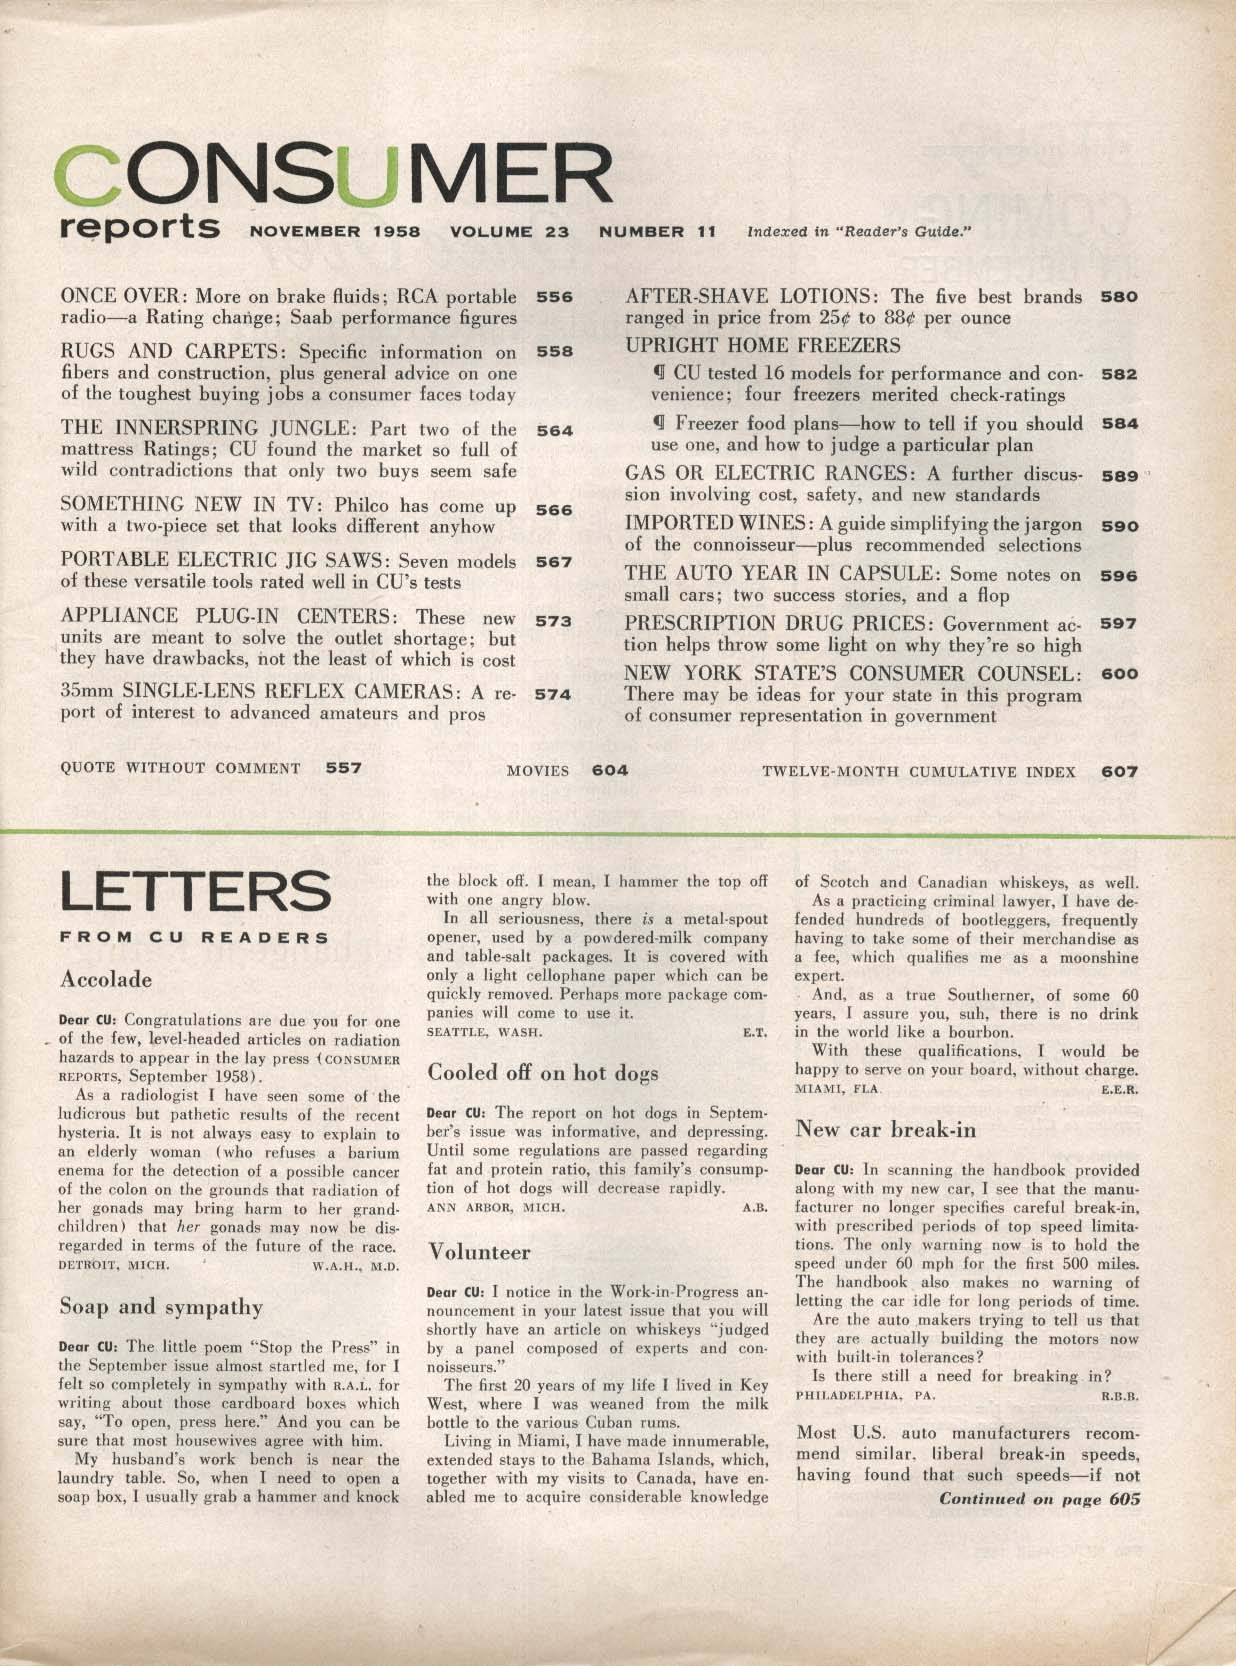 CONSUMER REPORTS Auto Year in Capsule: Rambler American 11 1958